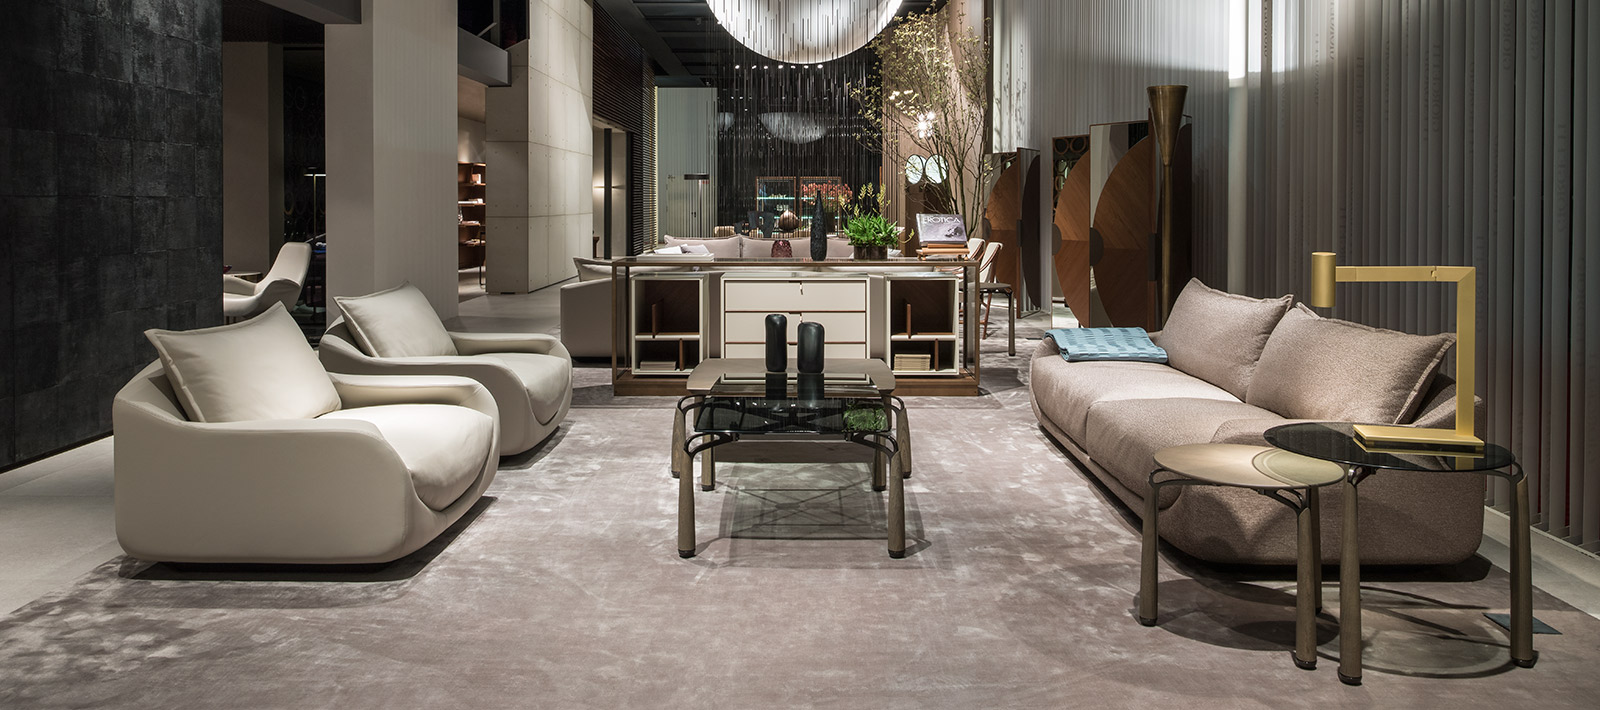 Martini Collection By Rossella Pugliatti For Giorgetti